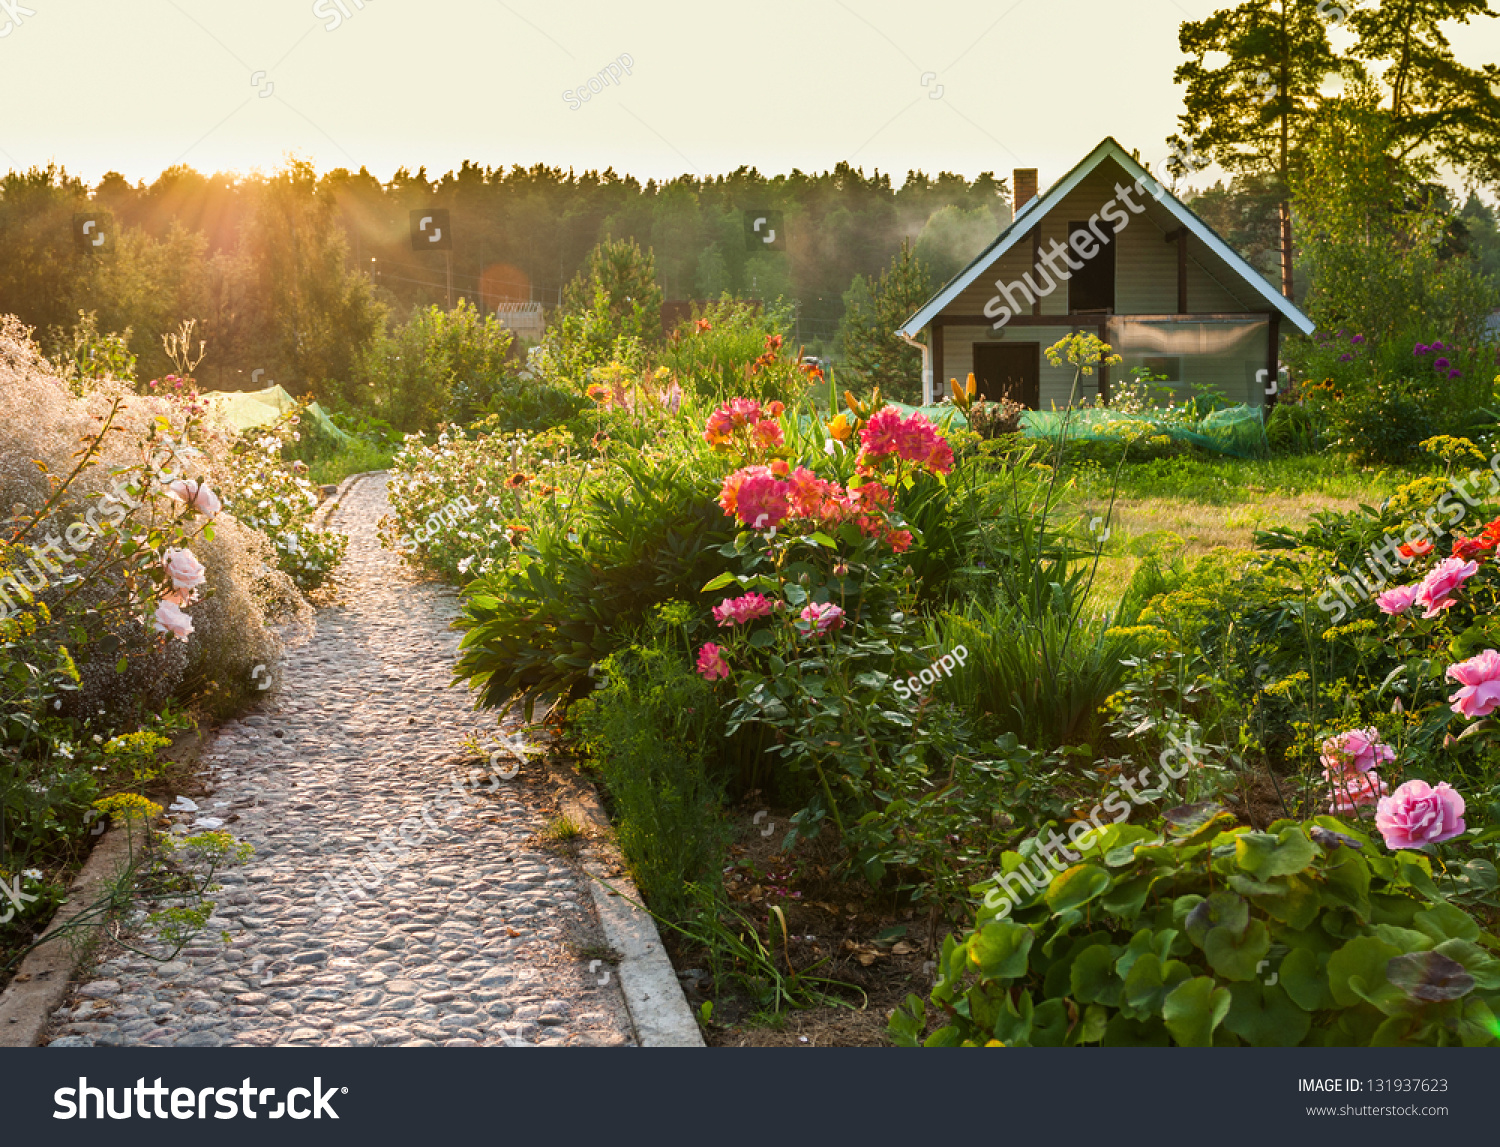 road in the beautiful garden - Beautiful Garden Pictures